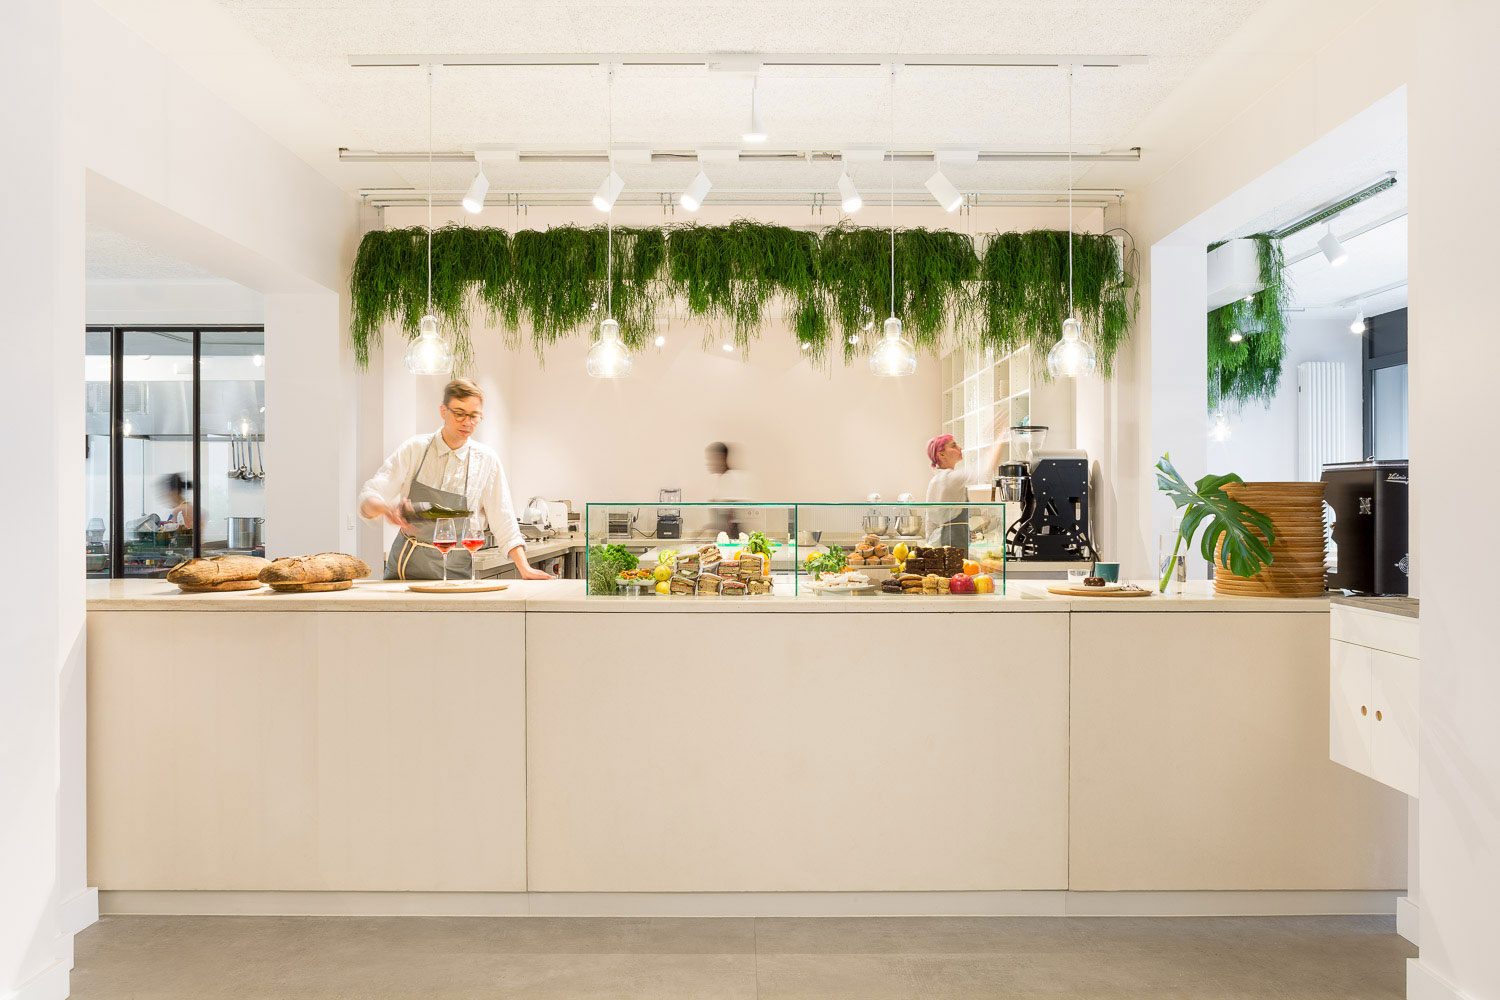 Architecture-London-Design-Freehaus-Hermanns-Berlin-Coworking-Cafe-Counter-3.jpg